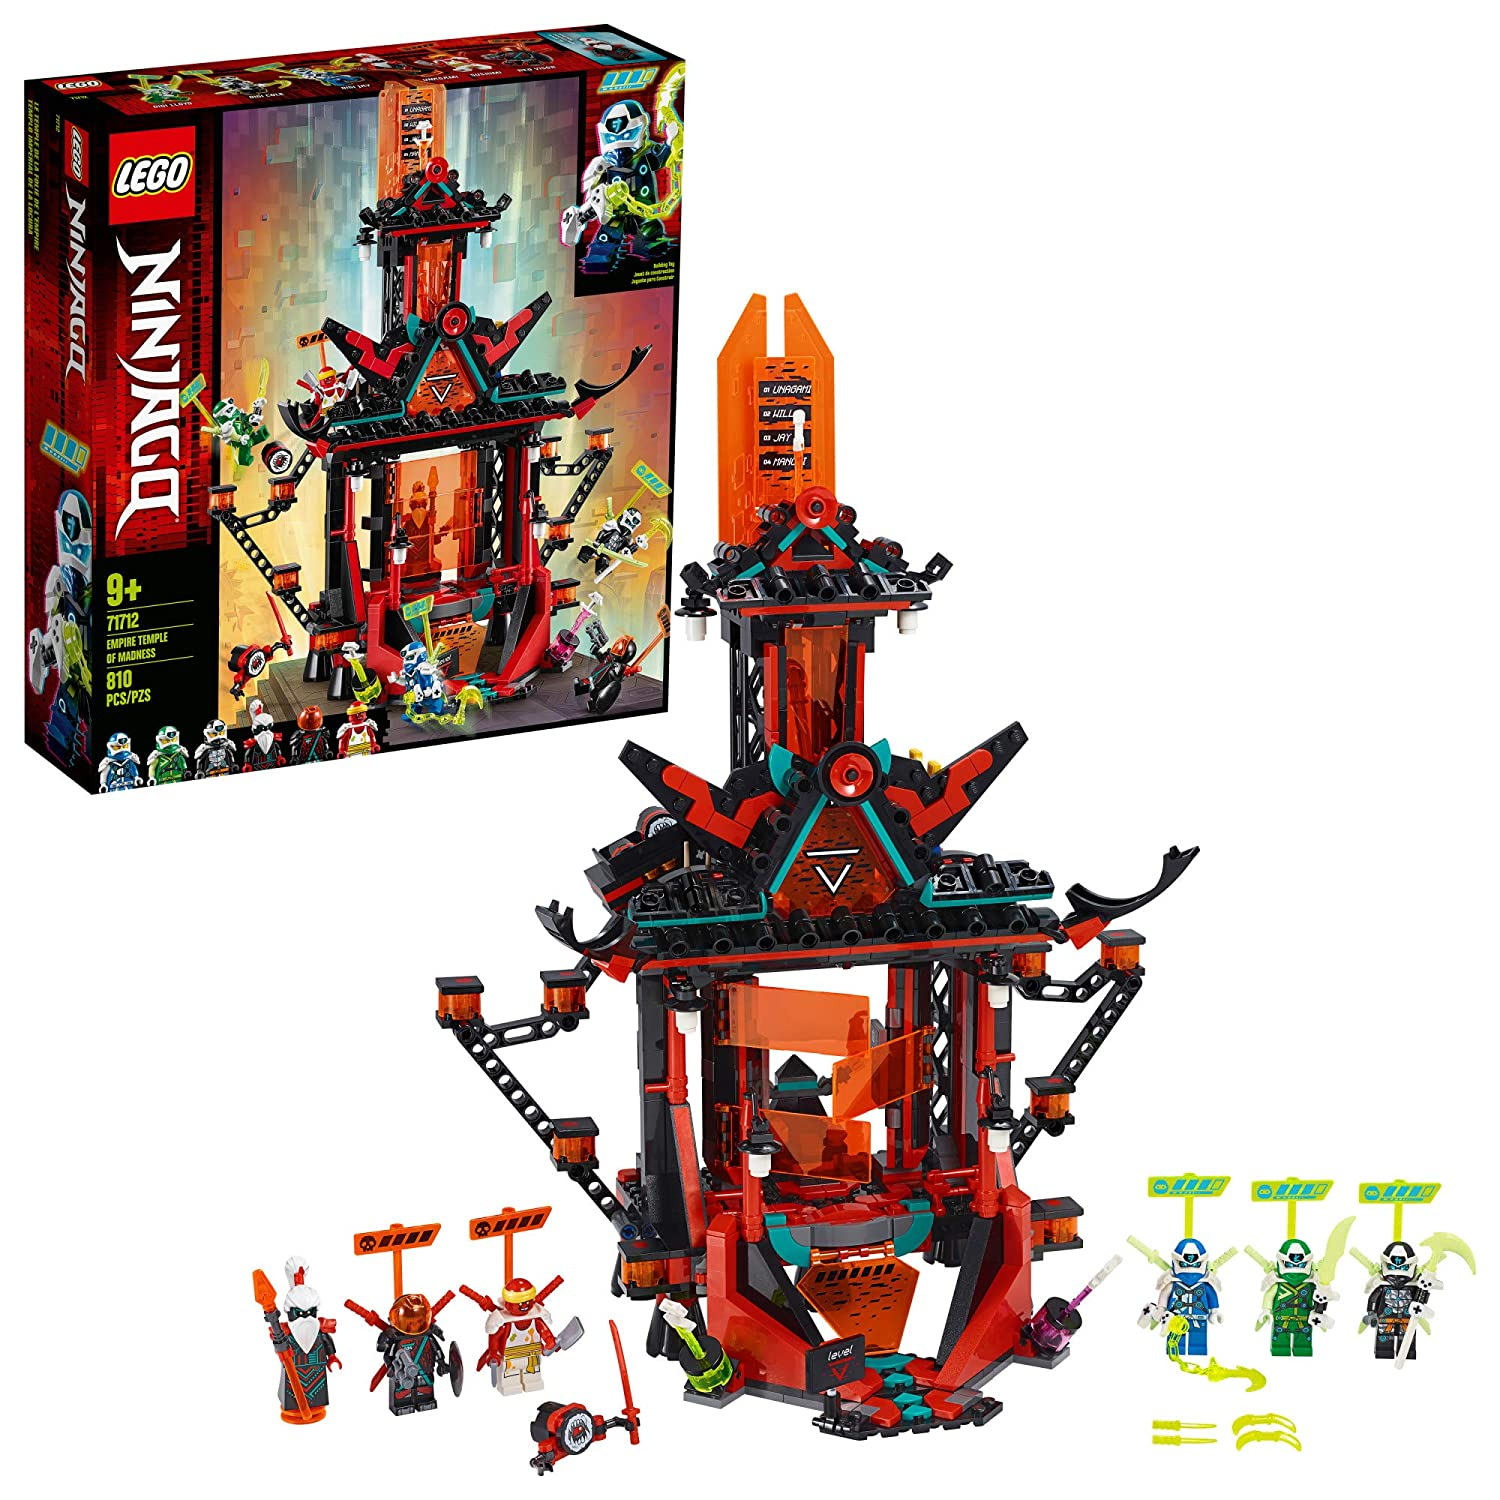 LEGO NINJAGO Empire Temple of Madness 71712 Ninja Temple Building Kit, New 2020 (810 Pieces)